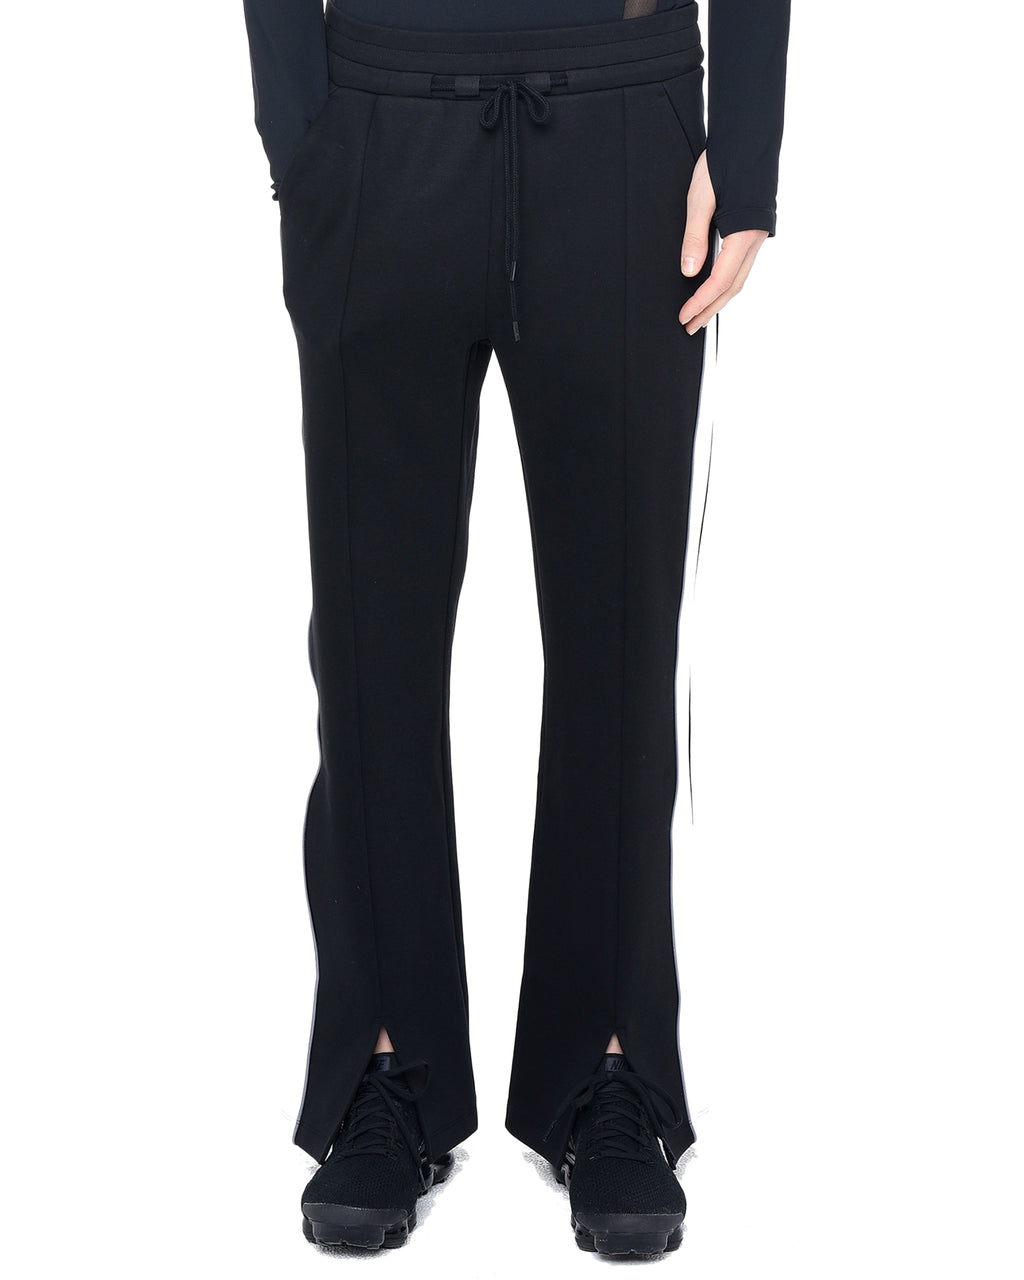 Lisbeth Pants Black